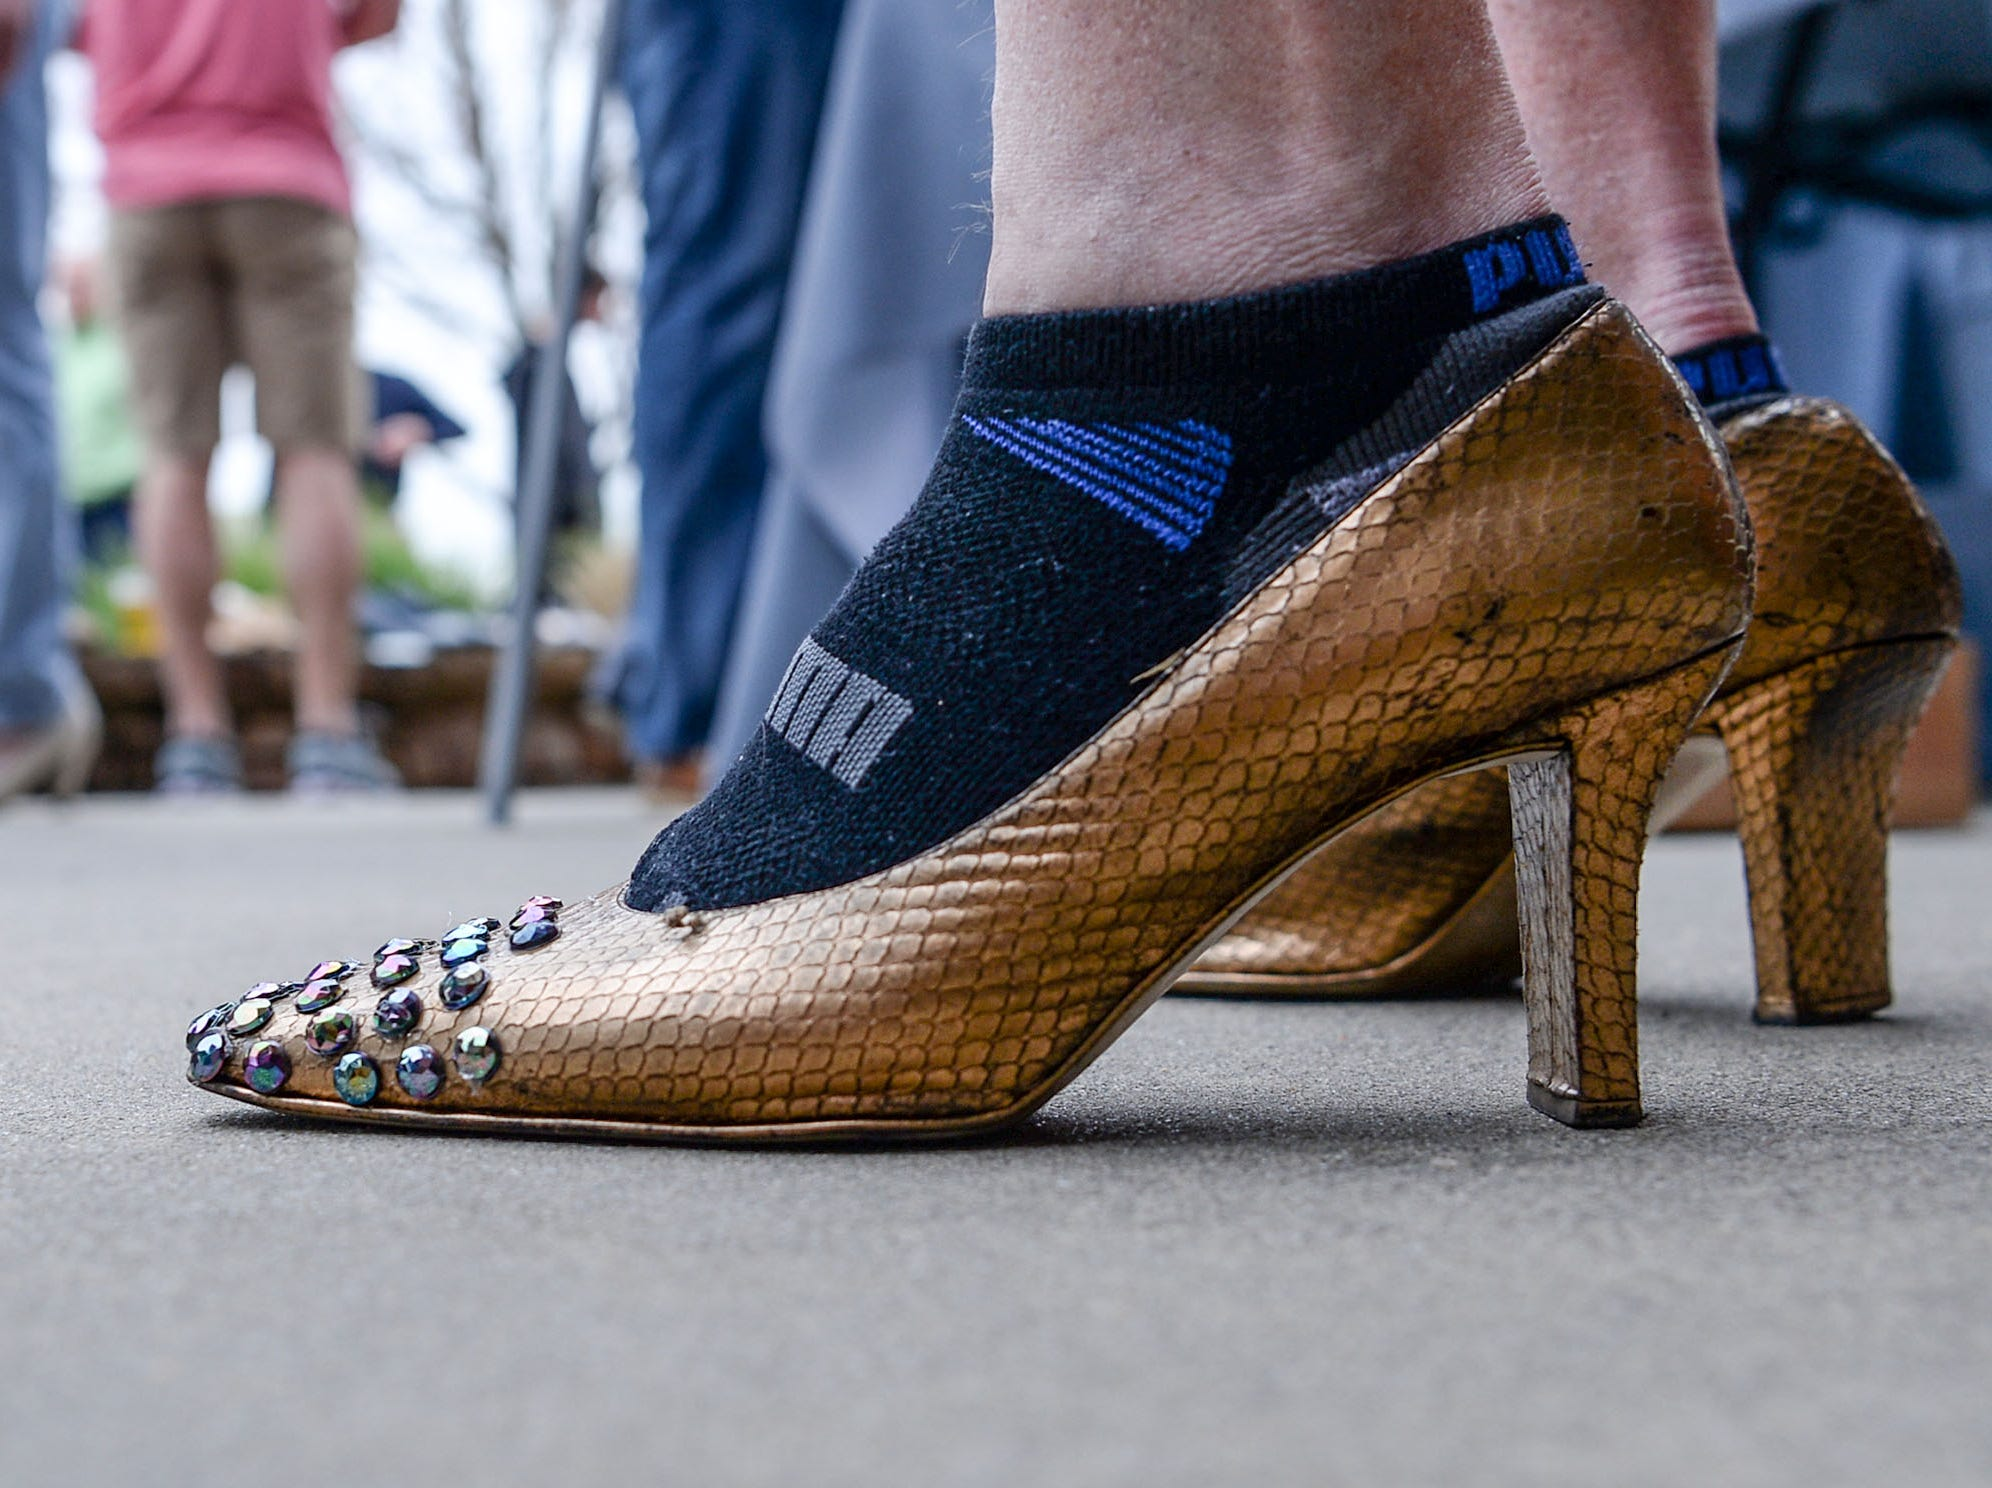 """Foothills Alliance held the """"Walk a Mile in Her Shoes"""" event to bring awareness to National Sexual Assault Awareness Month, during a break in the Main Street Program Block Party music by Combo Kings at Carolina Wren Park in downtown Anderson Thursday."""